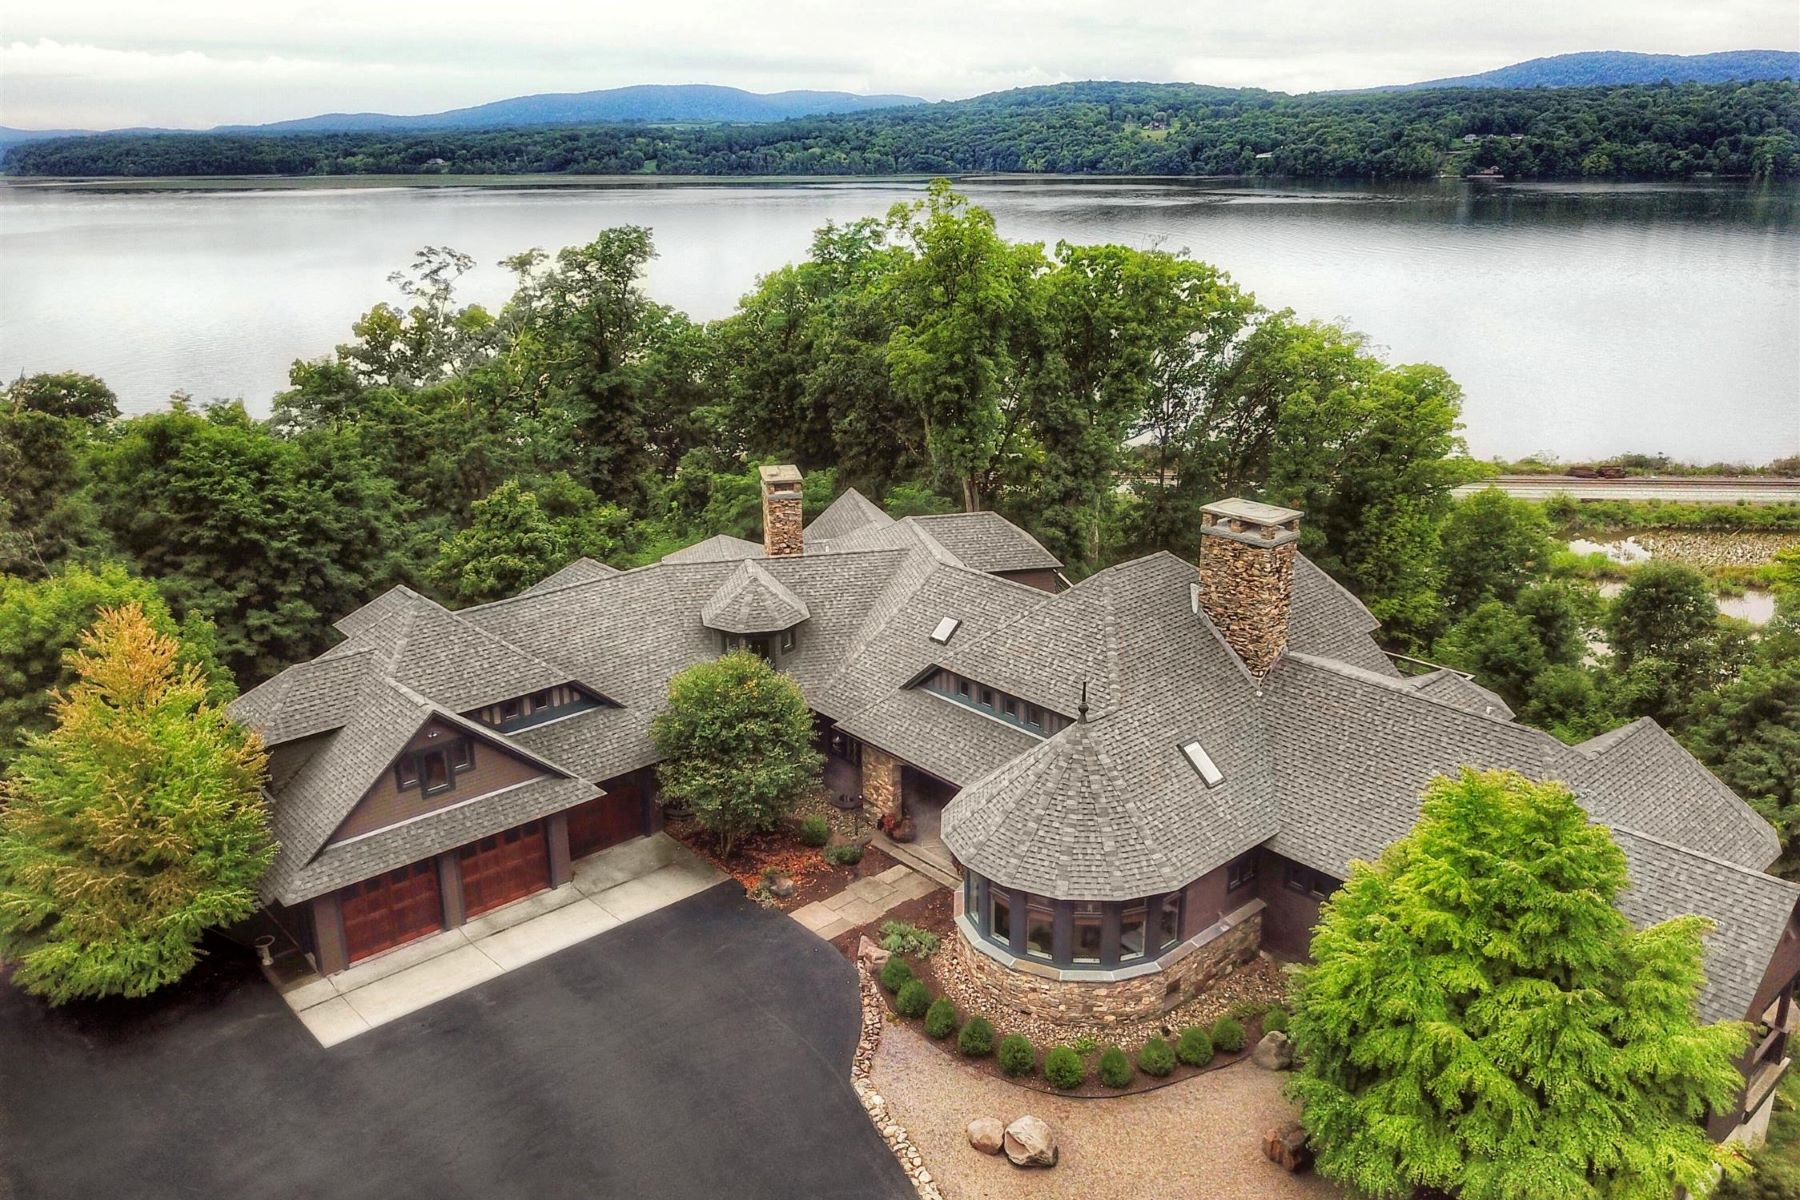 Single Family Home for Sale at Cliff House on the Hudson 18 Wyndclyffe Court Rhinebeck, New York 12572 United States